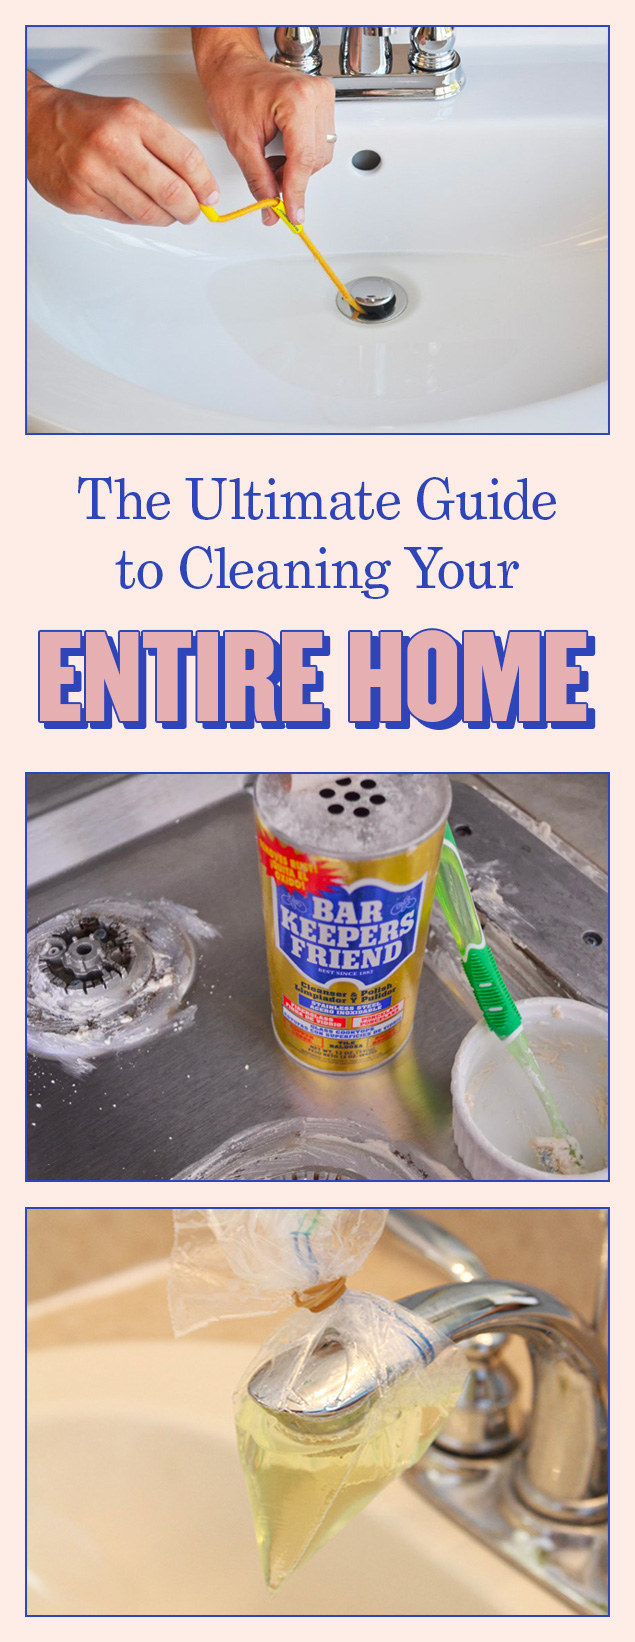 A guide to cleaning your entire home.